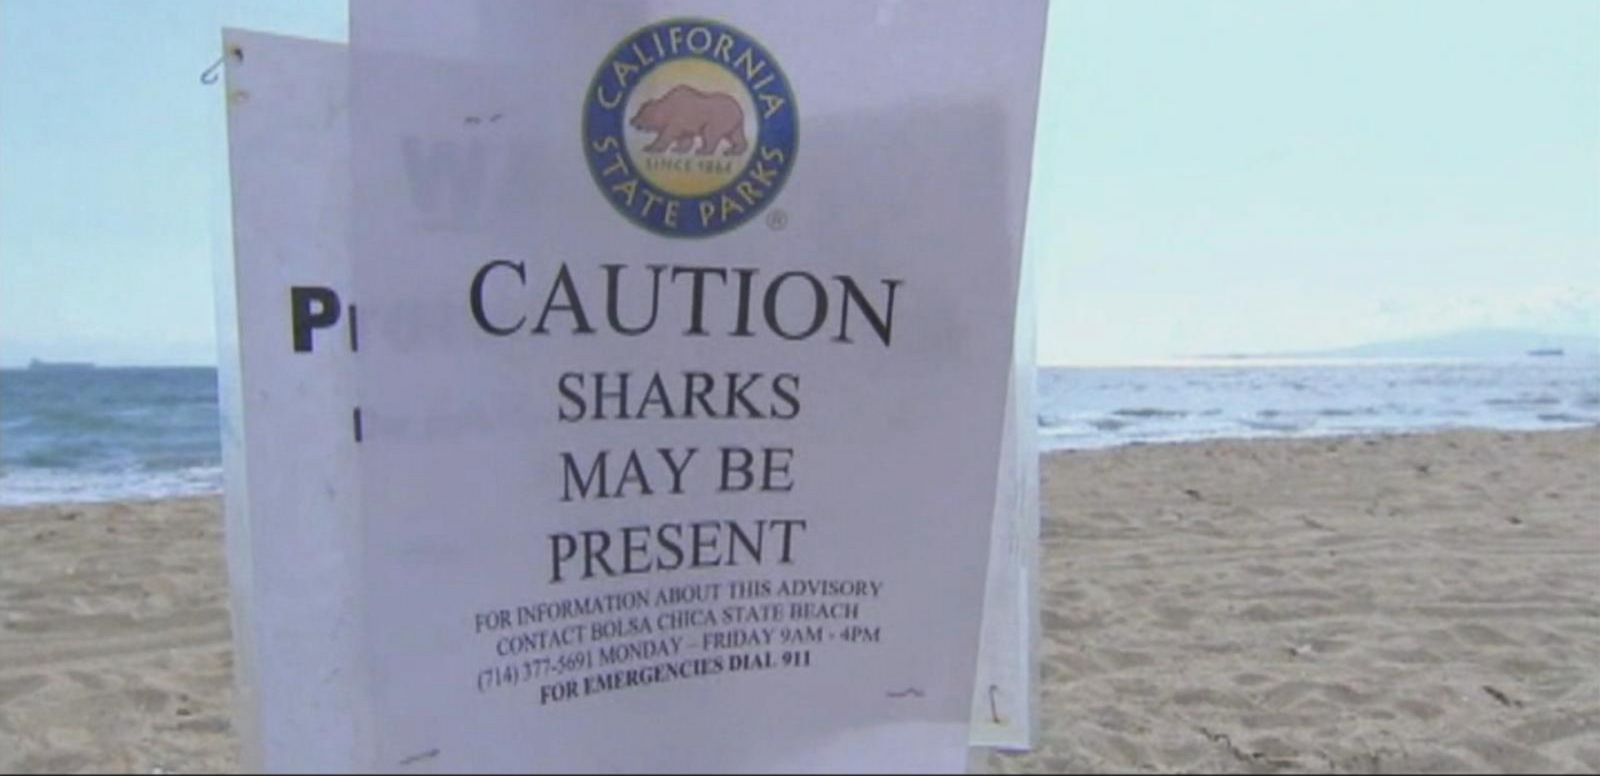 VIDEO: North Carolina Beachgoers Worried About Recent Shark Attacks